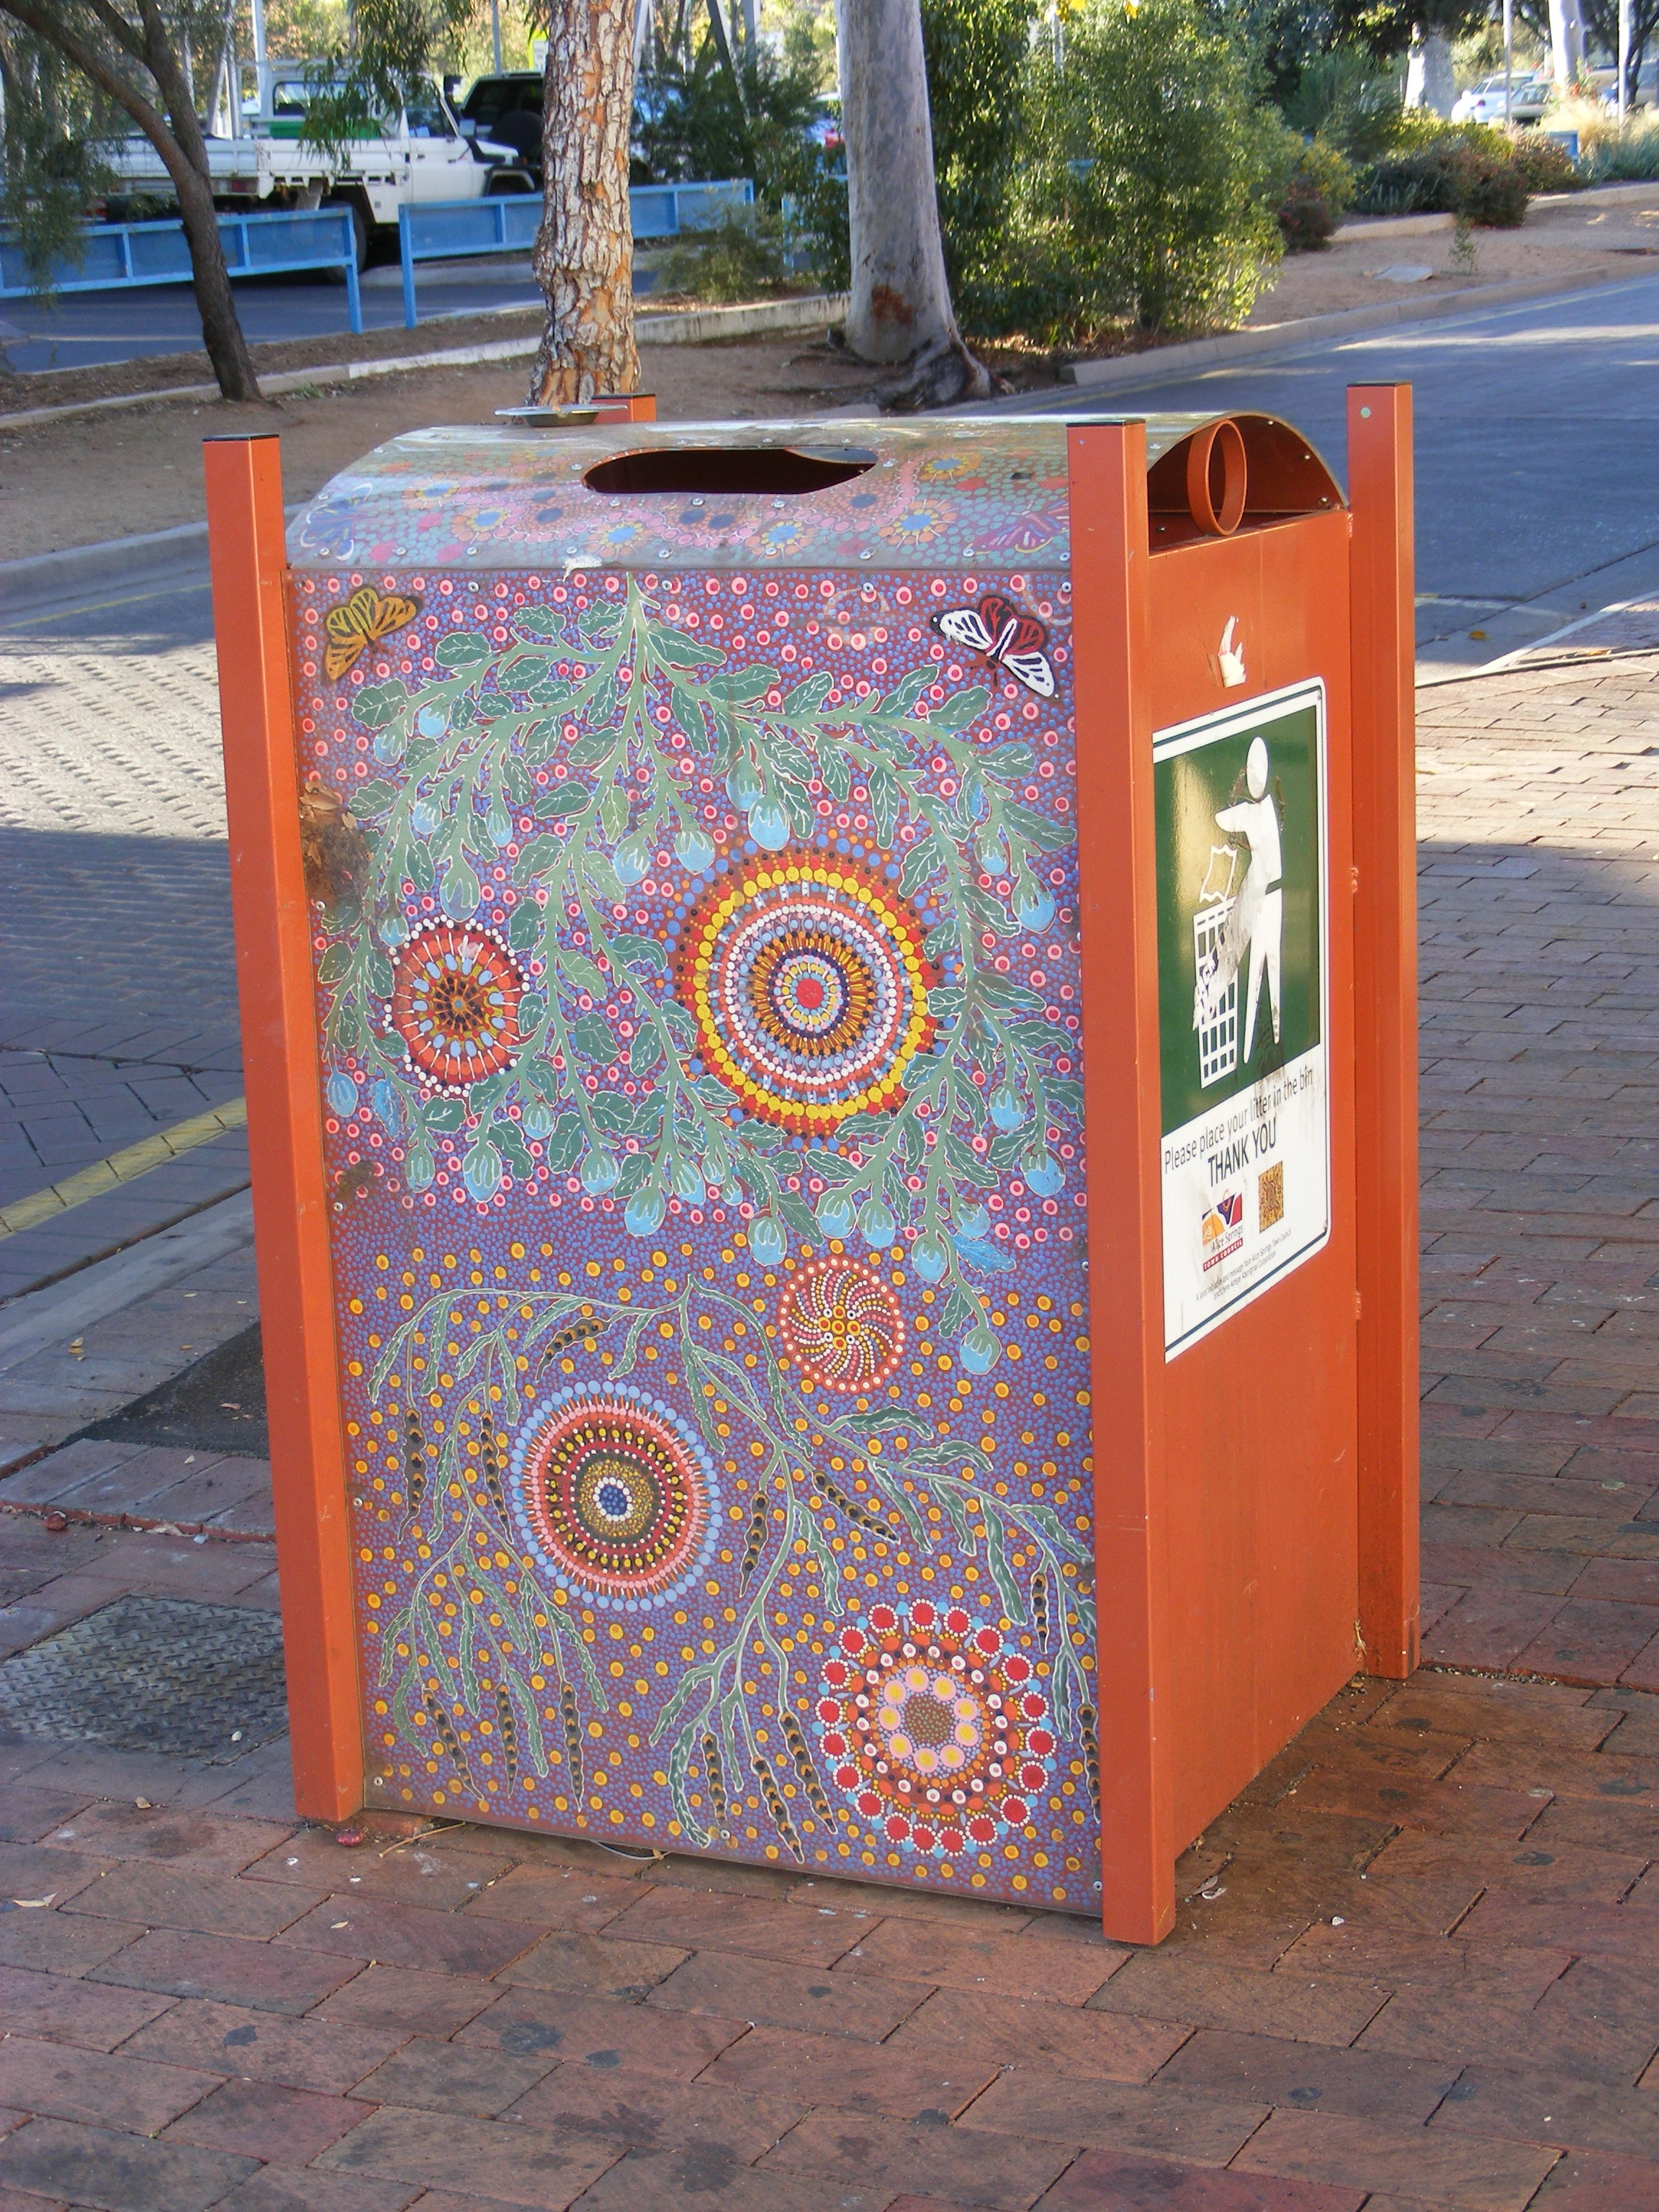 Even the trash cans are decorated in Aboriginal art.